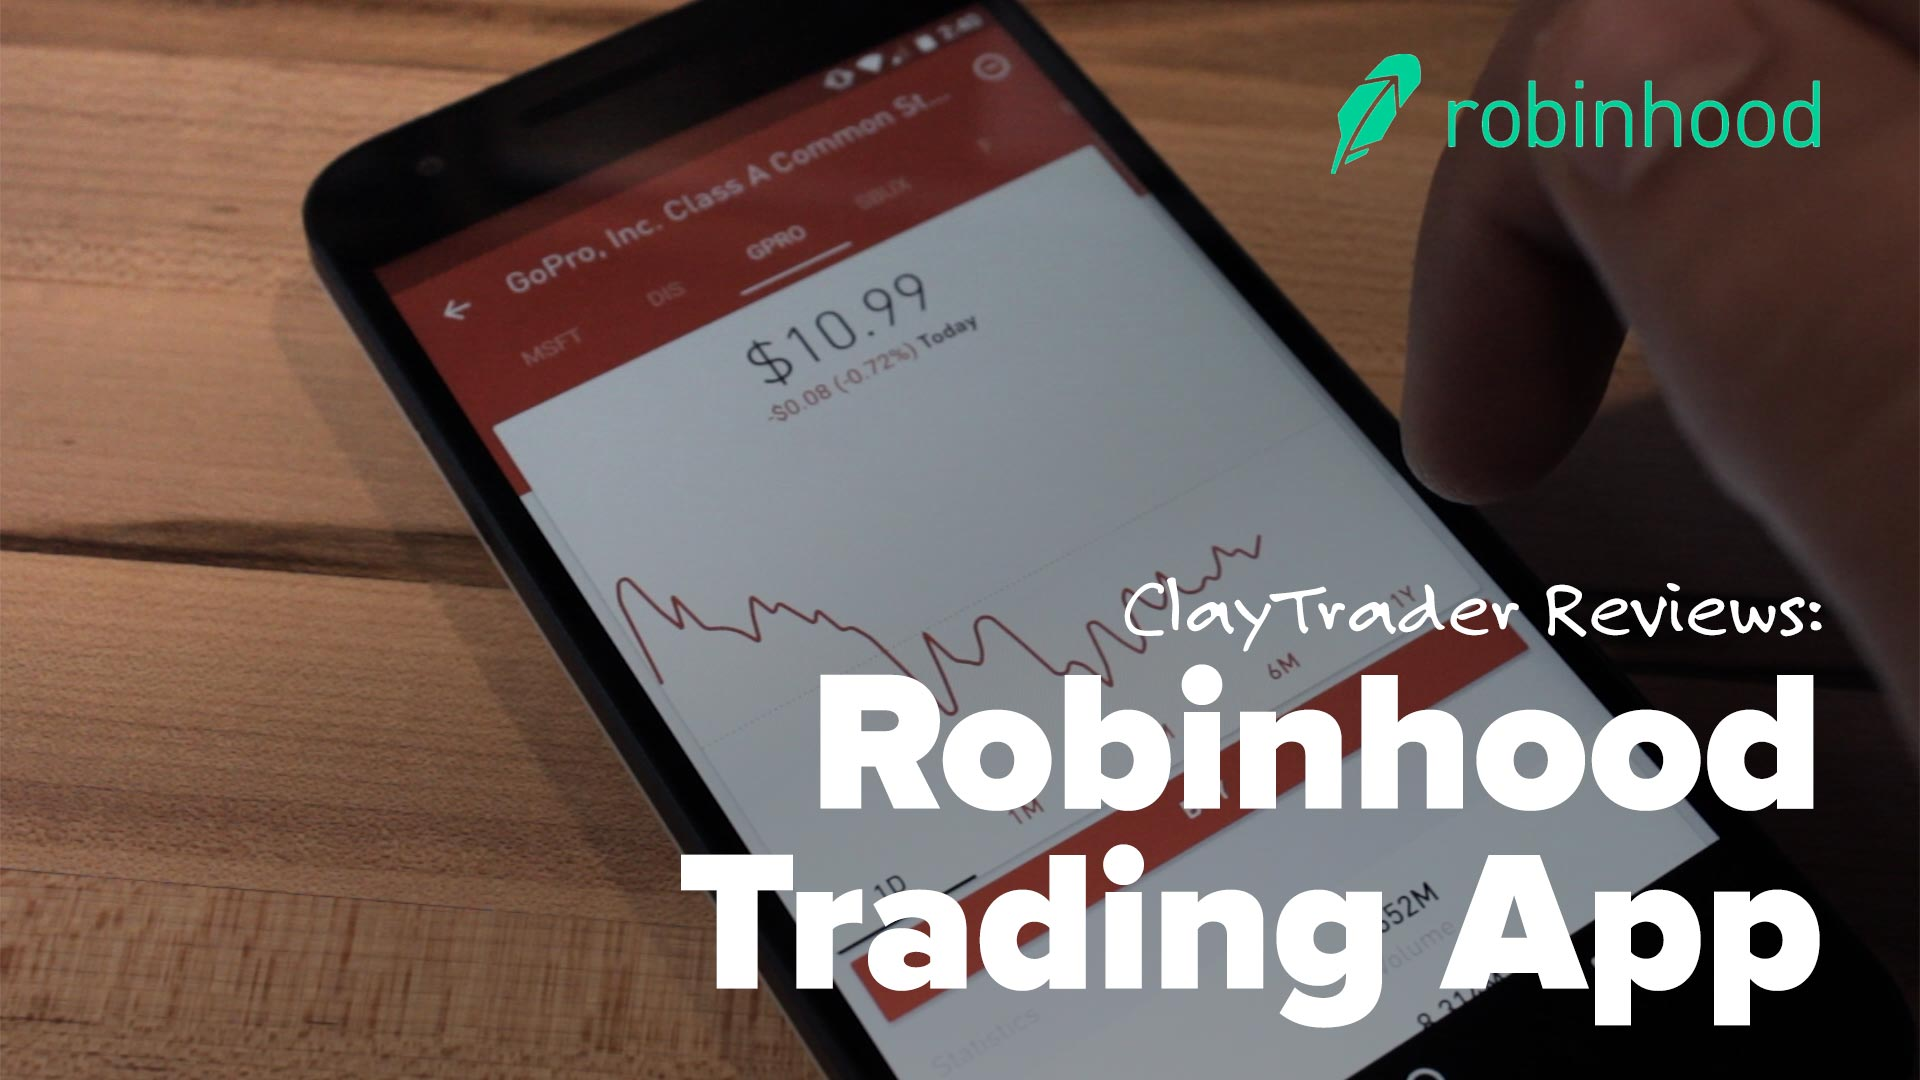 How To Install Robinhood App On Laptop